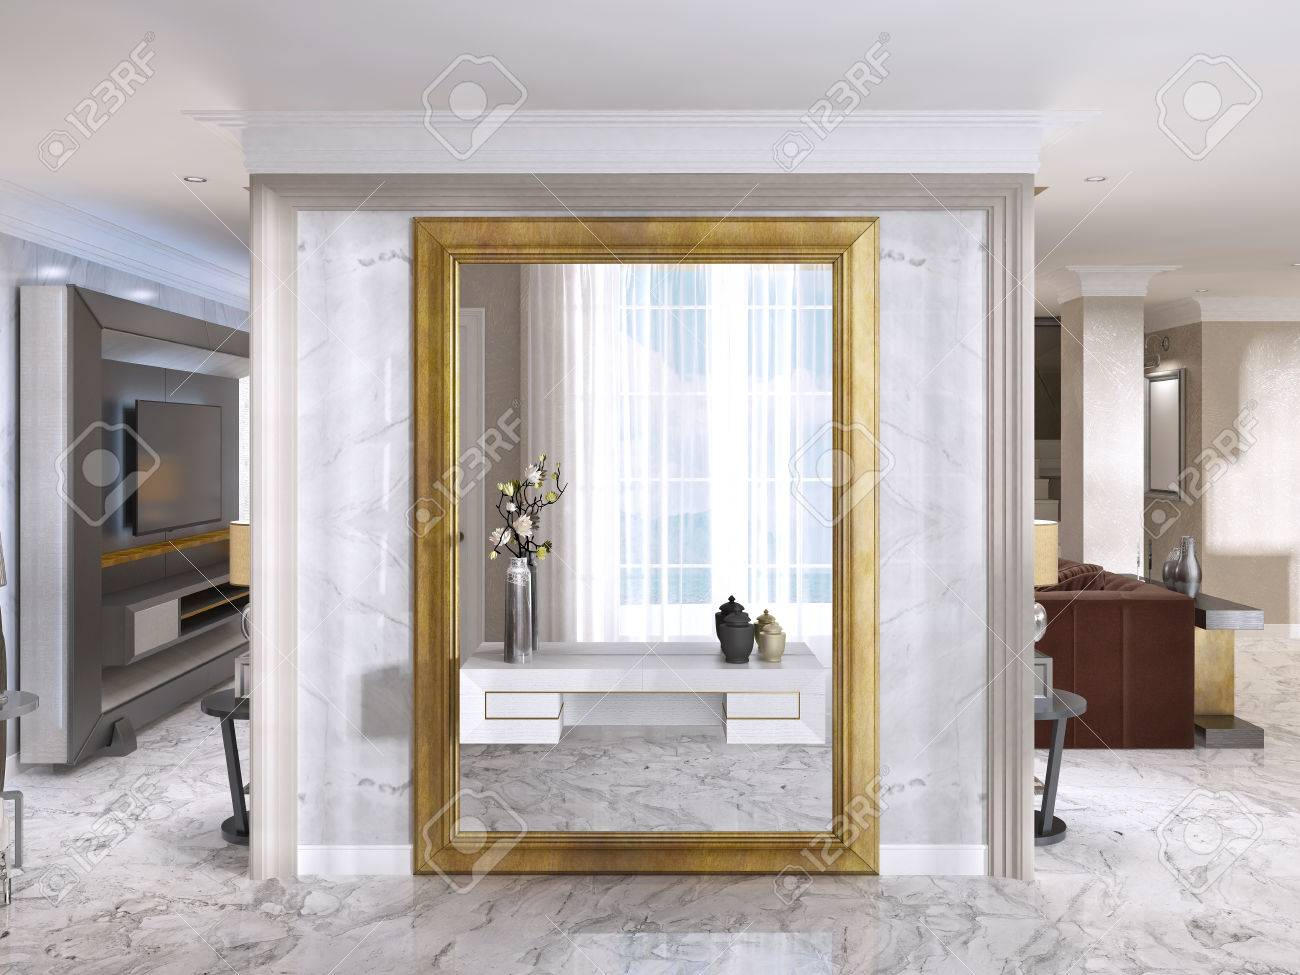 Luxurious Art Deco Entrance Hall With A Large Designer Mirror Stock Photo Picture And Royalty Free Image Image 66395491